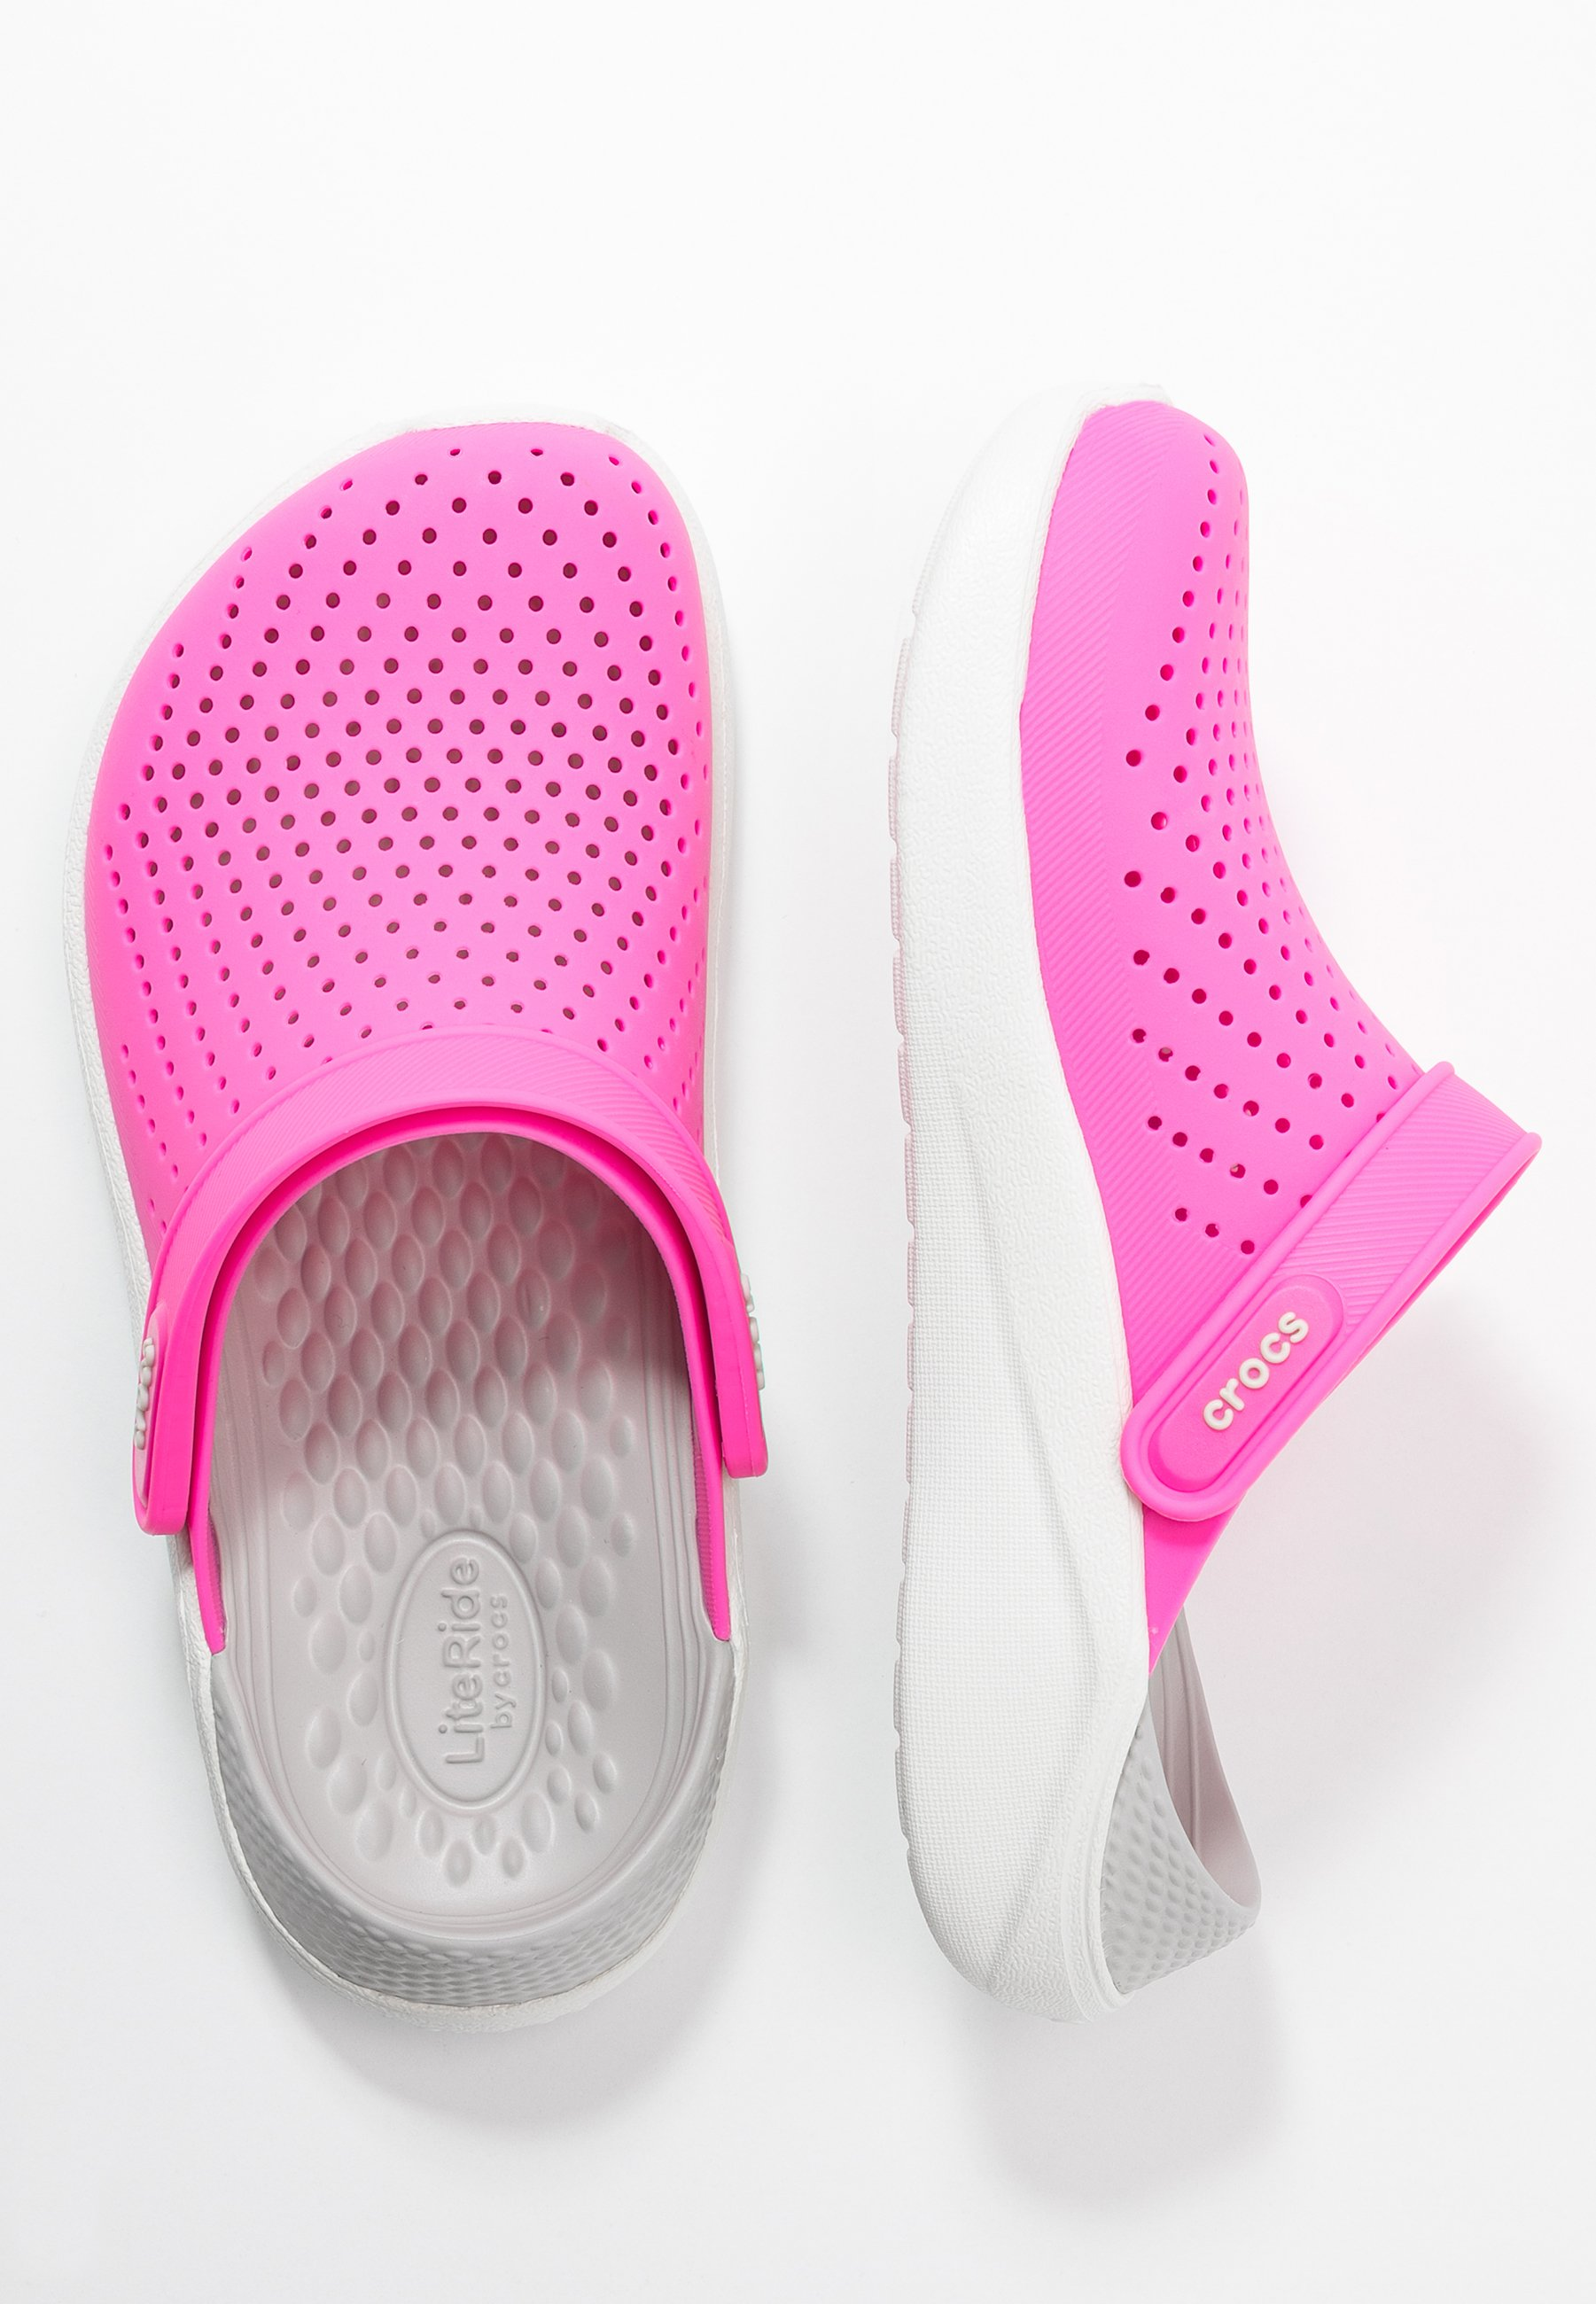 Palats öka förare  Crocs LITERIDE RELAXED FIT - Sandaler - electric pink/almost white